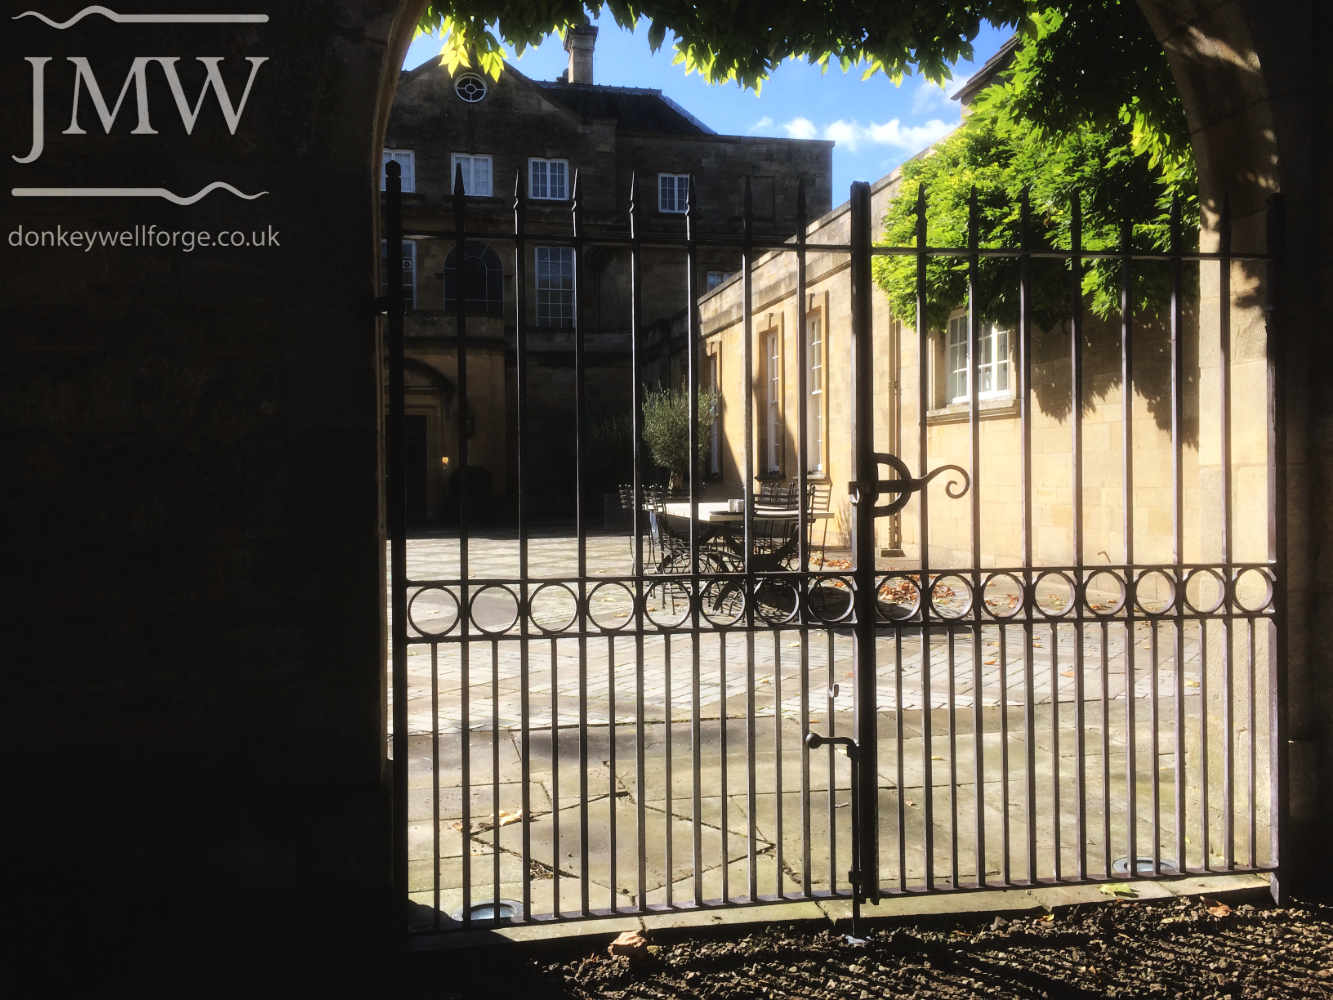 bespoke-estate-iron-courtyard-gate-cotswolds-donkeywell-forge-architectual